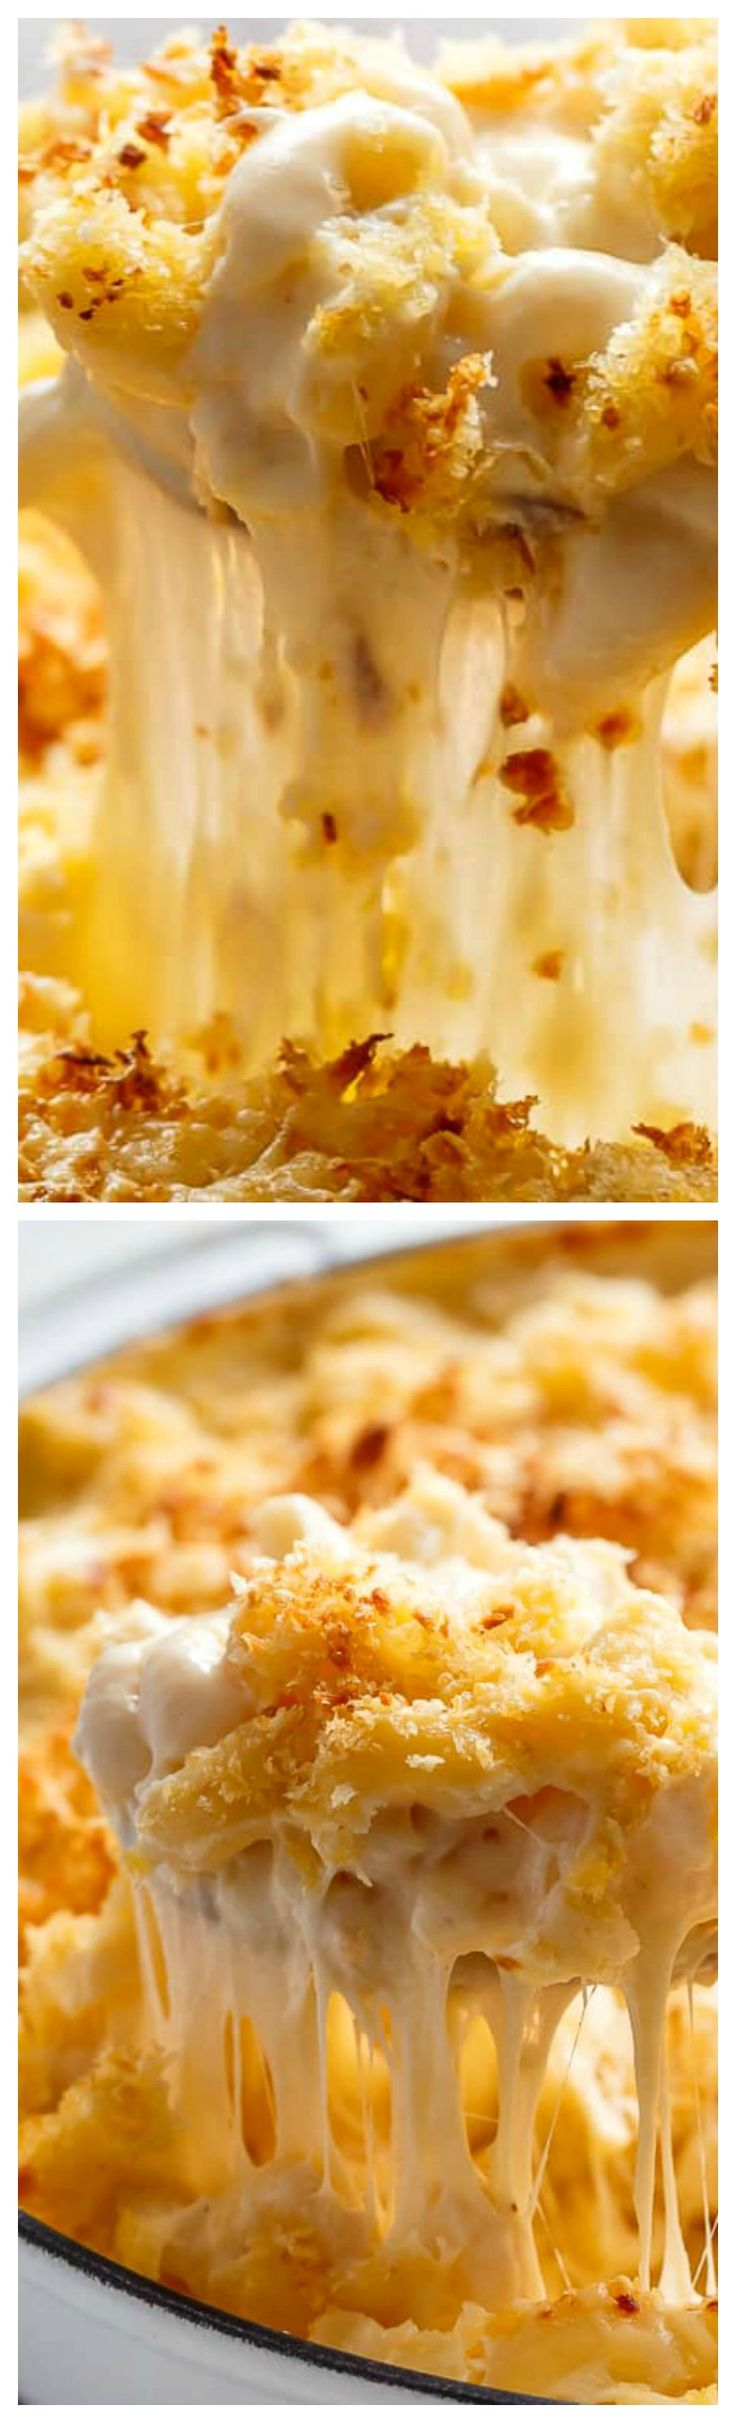 Garlic Parmesan Mac And Cheese ~ Better than the original... A creamy garlic parmesan cheese sauce coats your macaroni, topped with parmesan fried bread crumbs, while saving some calories!